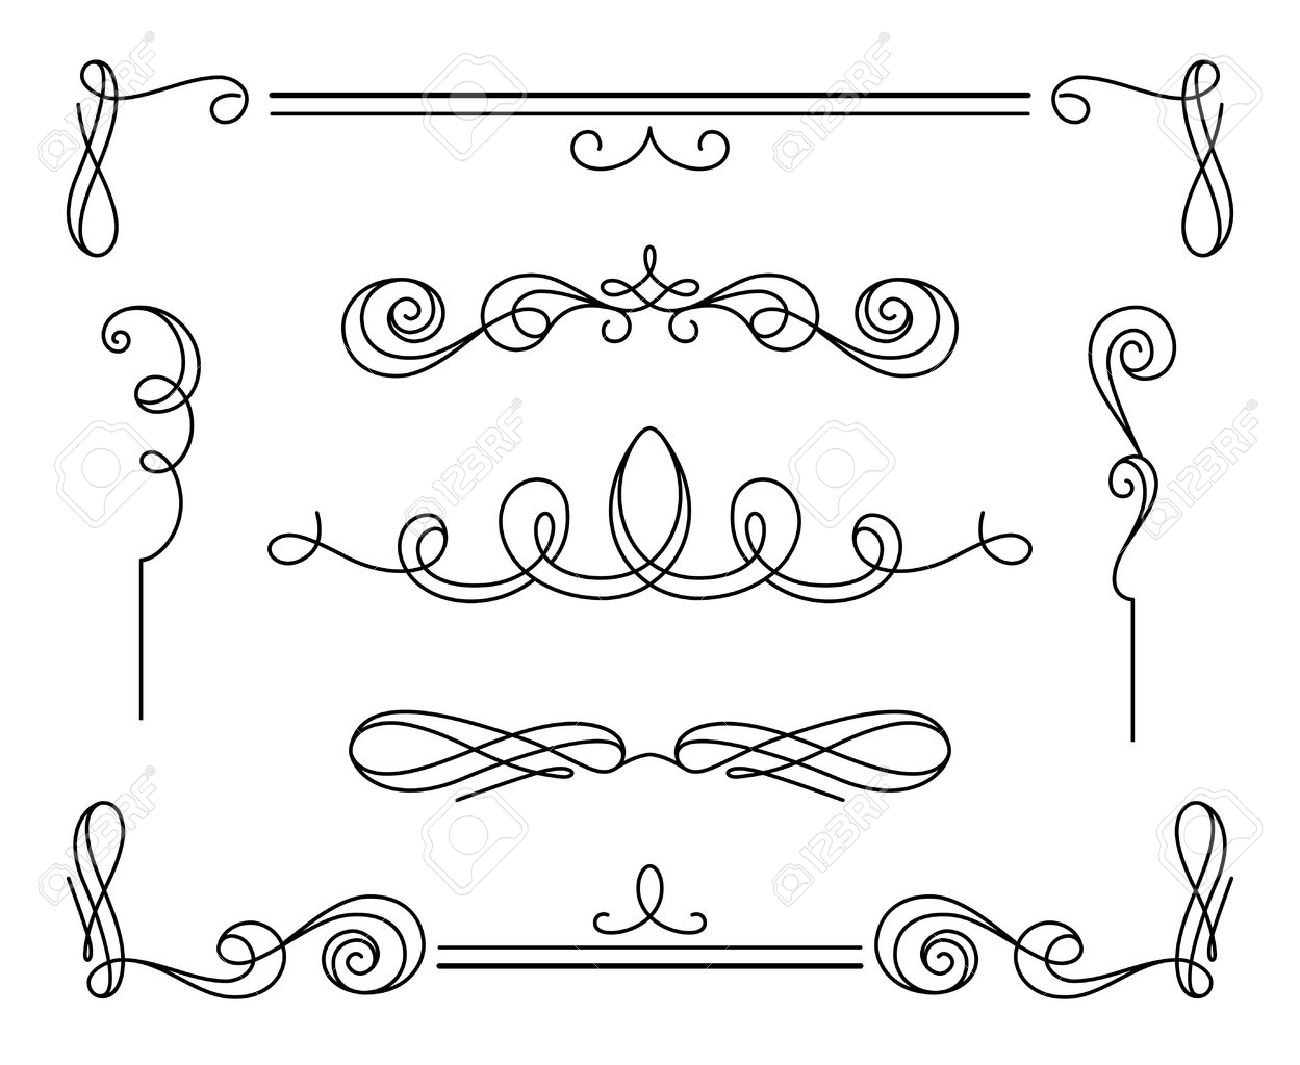 Vintage calligraphic vignettes and dividers, set of decorative design elements in retro style, simple swirls, scroll embellishment on white - 45459101